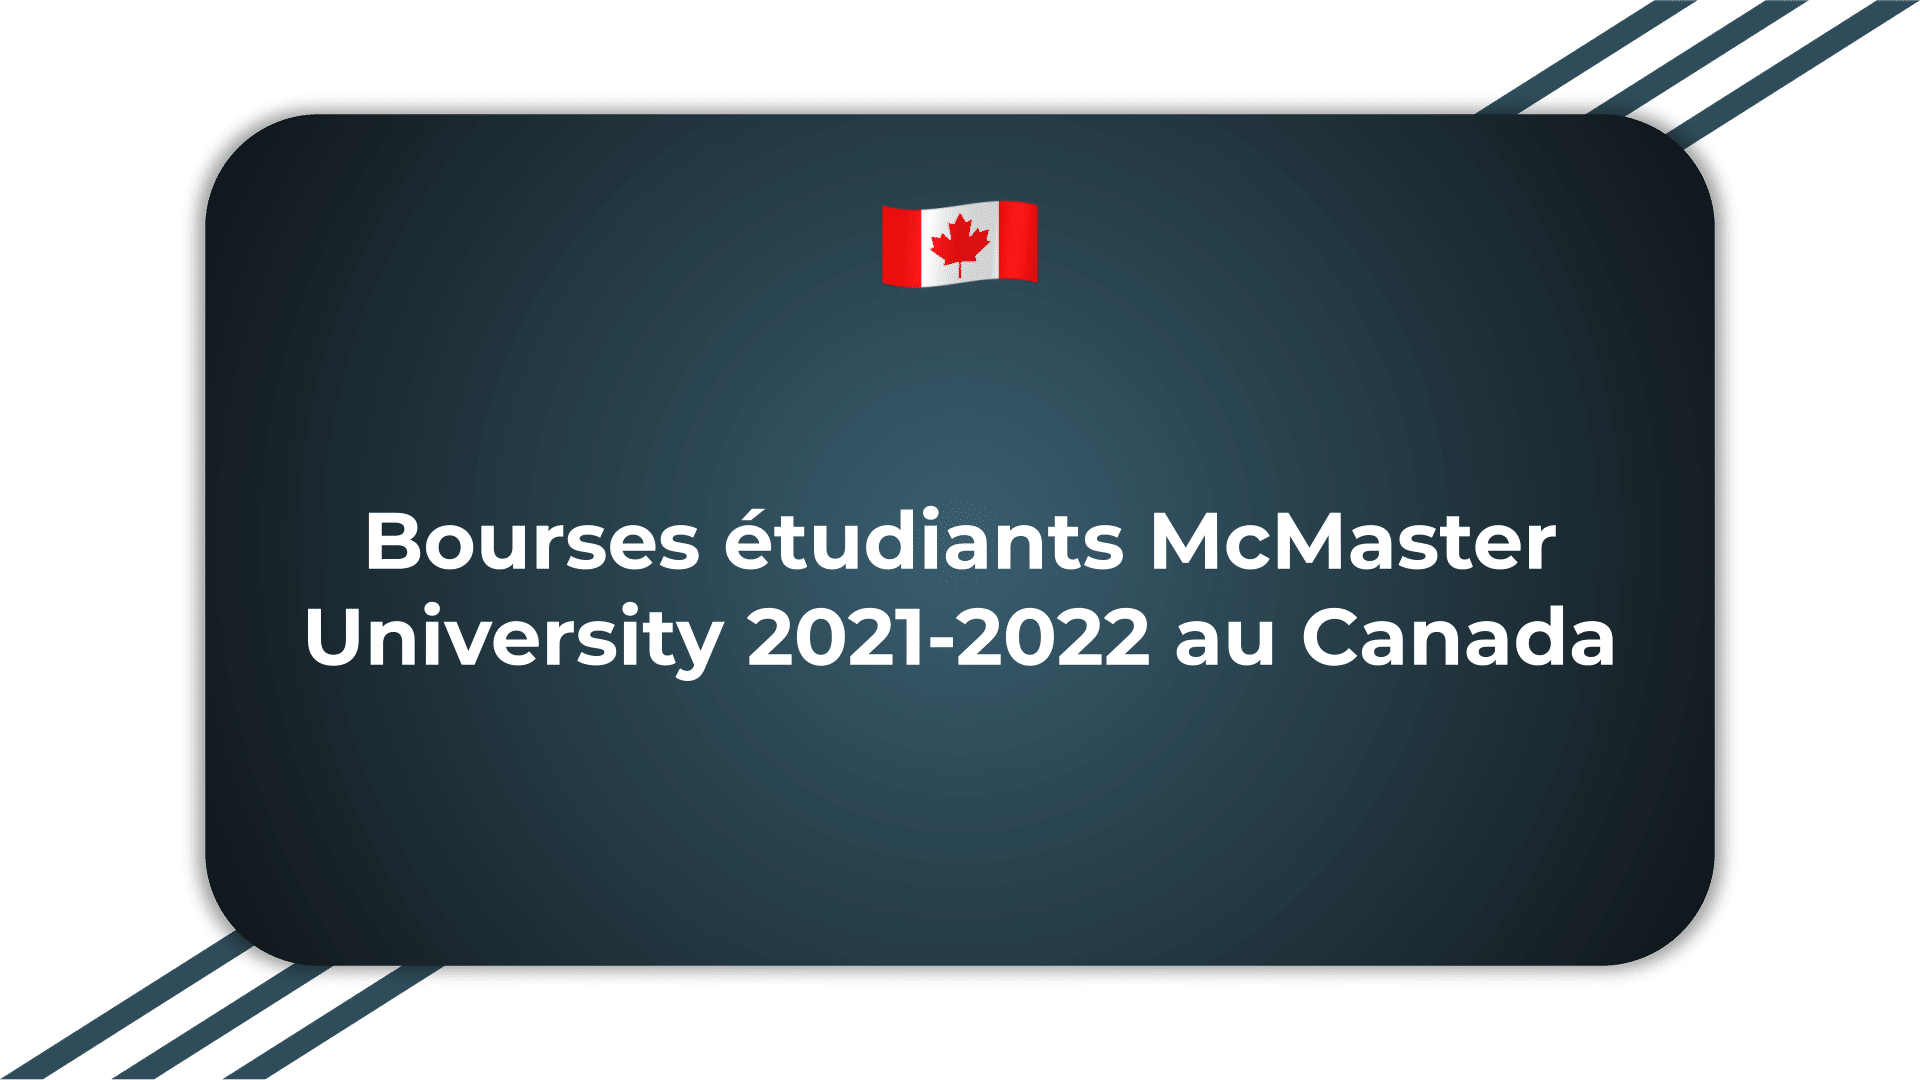 Bourses étudiants McMaster University